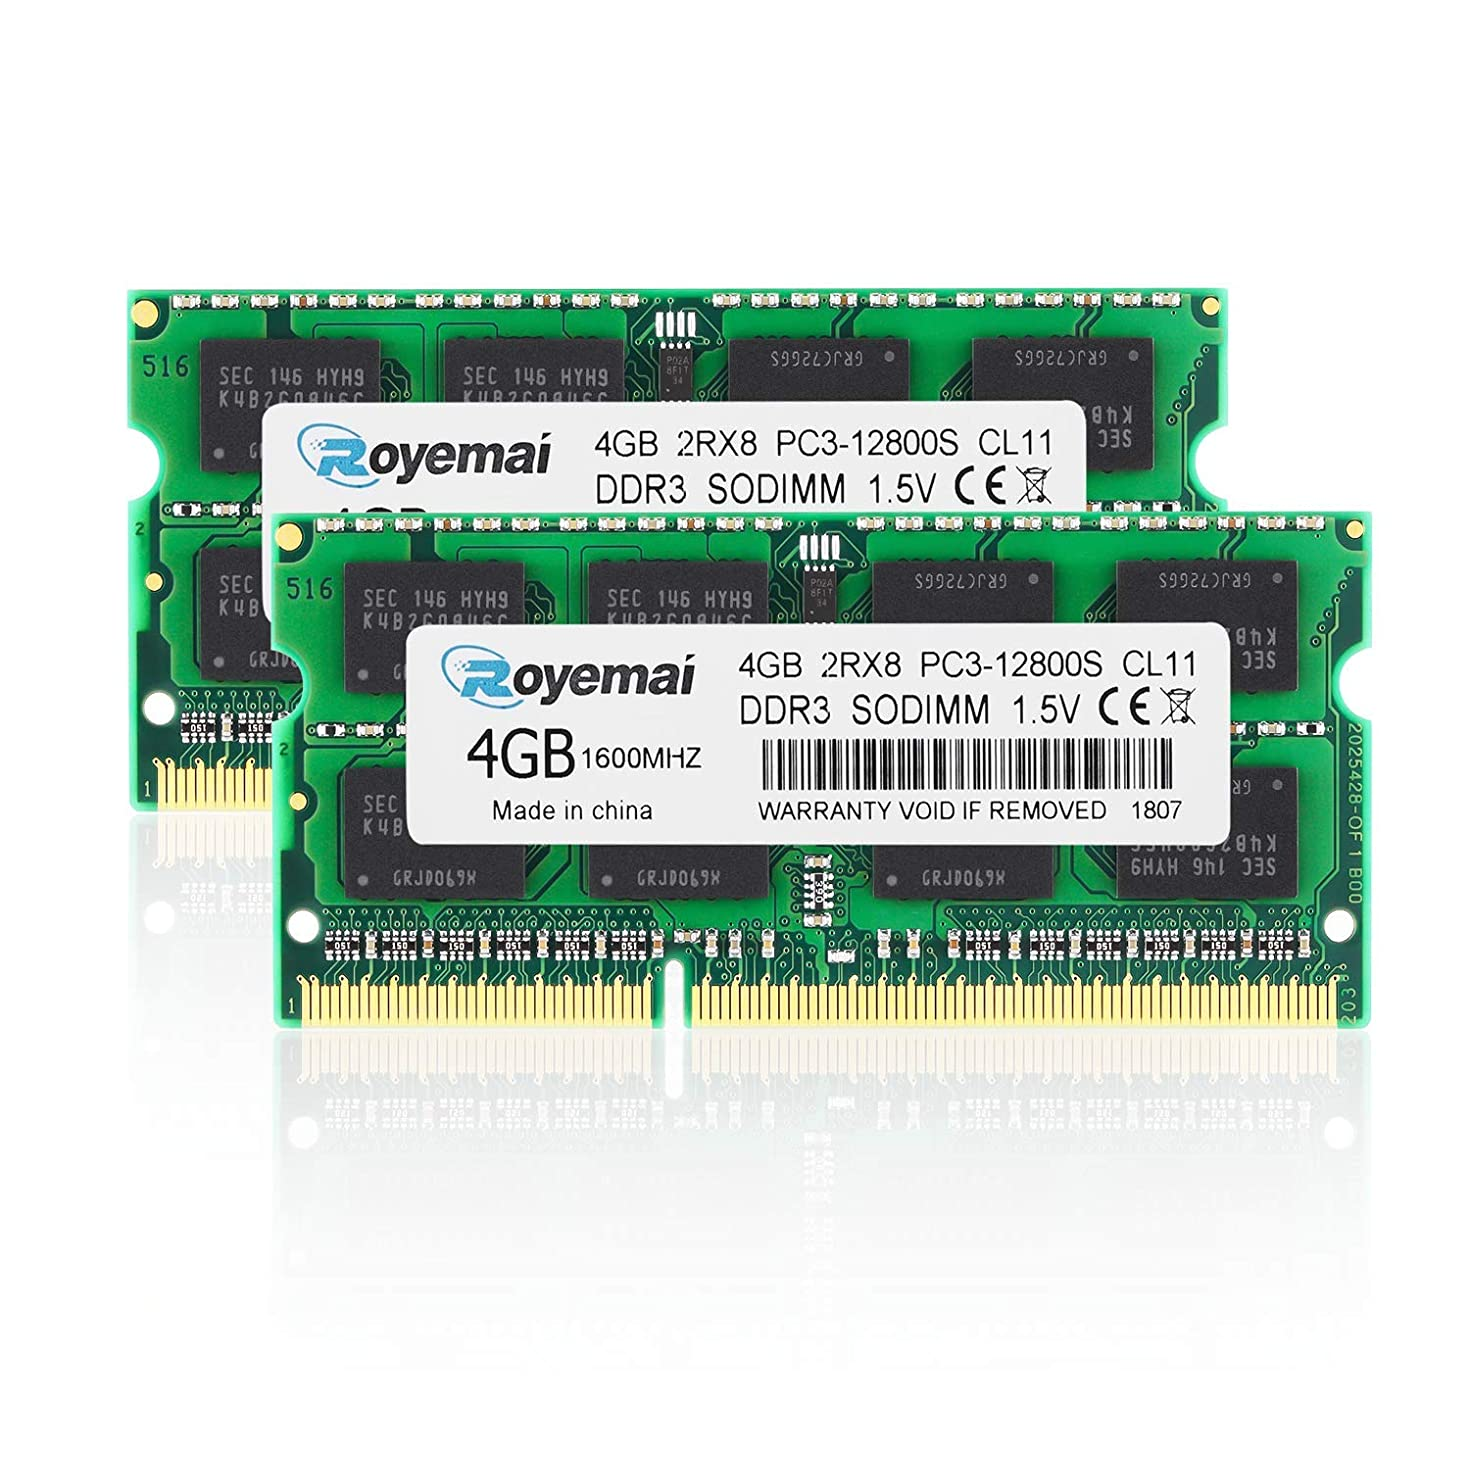 ROYEMAI PC3-12800, DDR3 1600, RAM DDR3 8GB Kit (2x4GB) 1.5V CL11 204-pin 2Rx8 PC3 12800S 1600 MHZ DDR3 Notebook Memory RAM Modules for Laptop